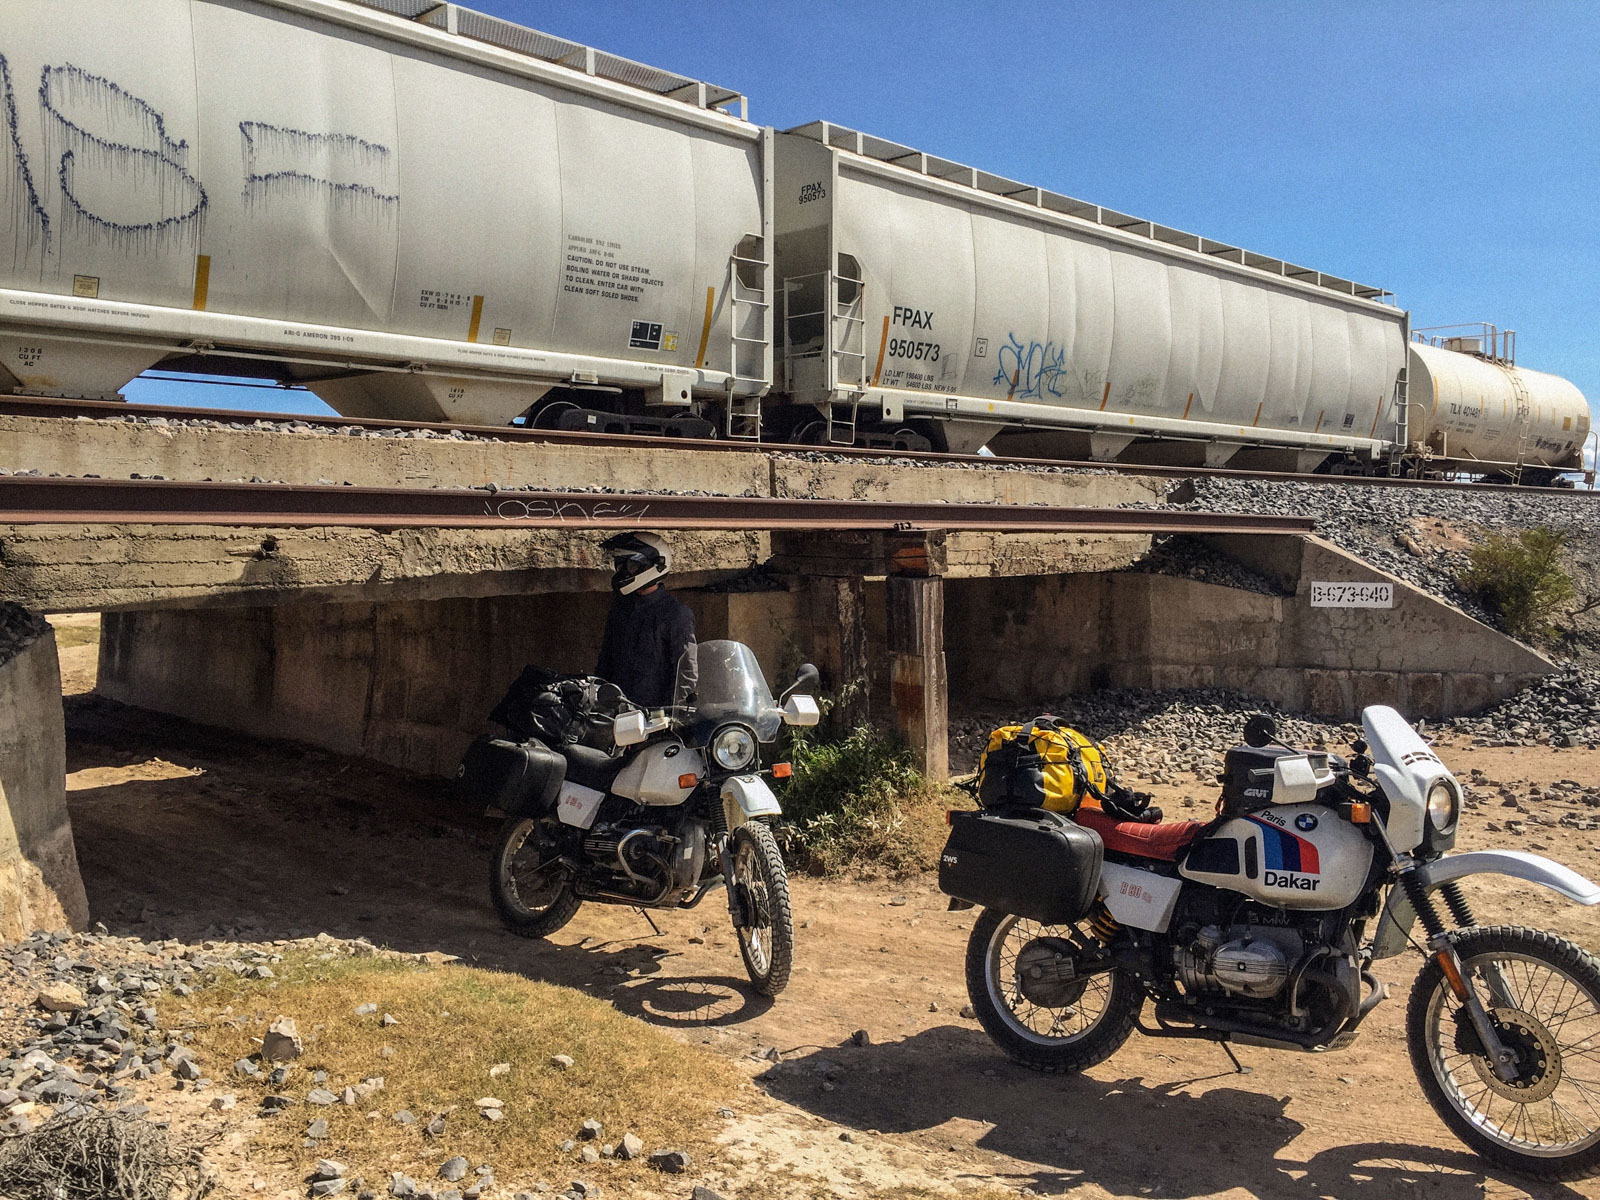 2-Wadley-Station-Mexico-Passing-under-railway